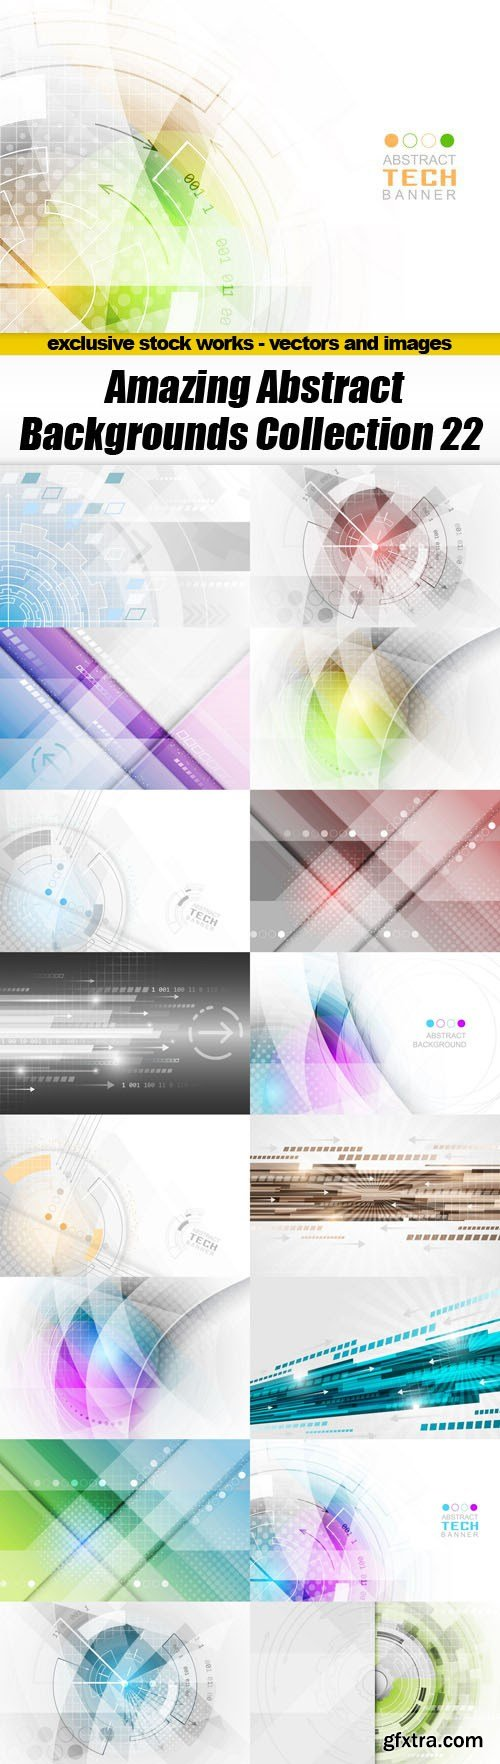 Amazing Abstract Backgrounds Collection 22 - 17xEPS